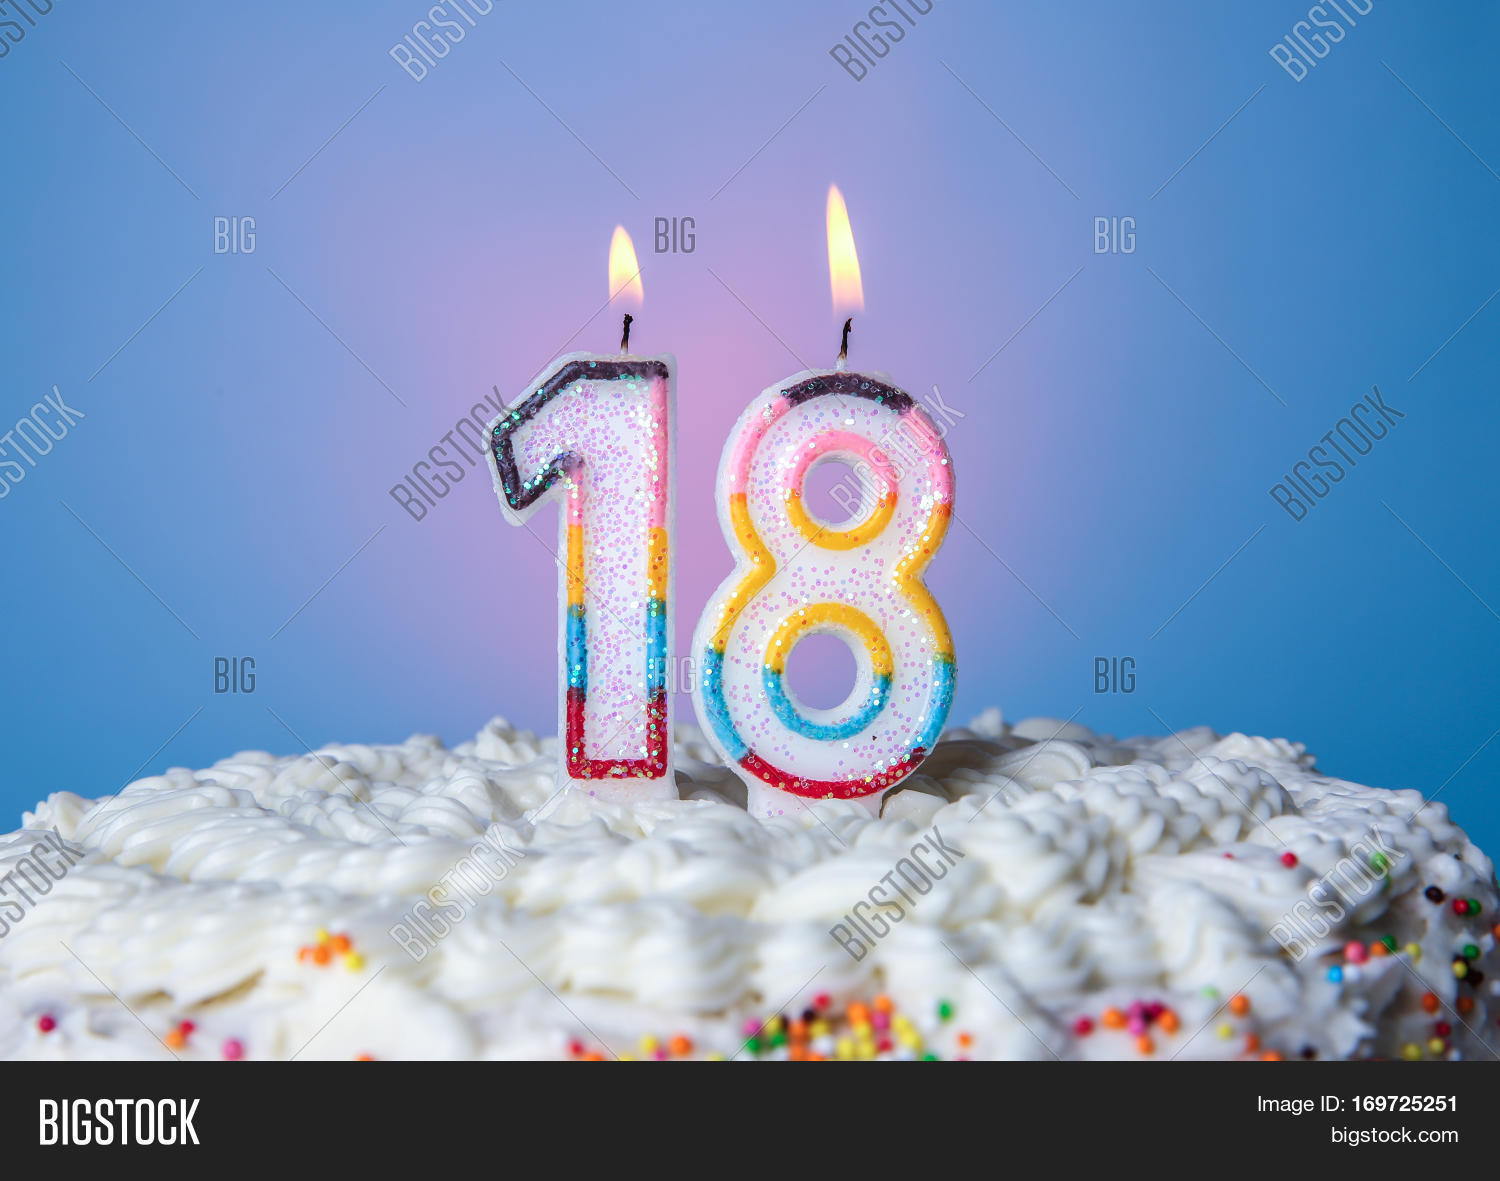 Tasty Cake Candles Image Photo Free Trial Bigstock